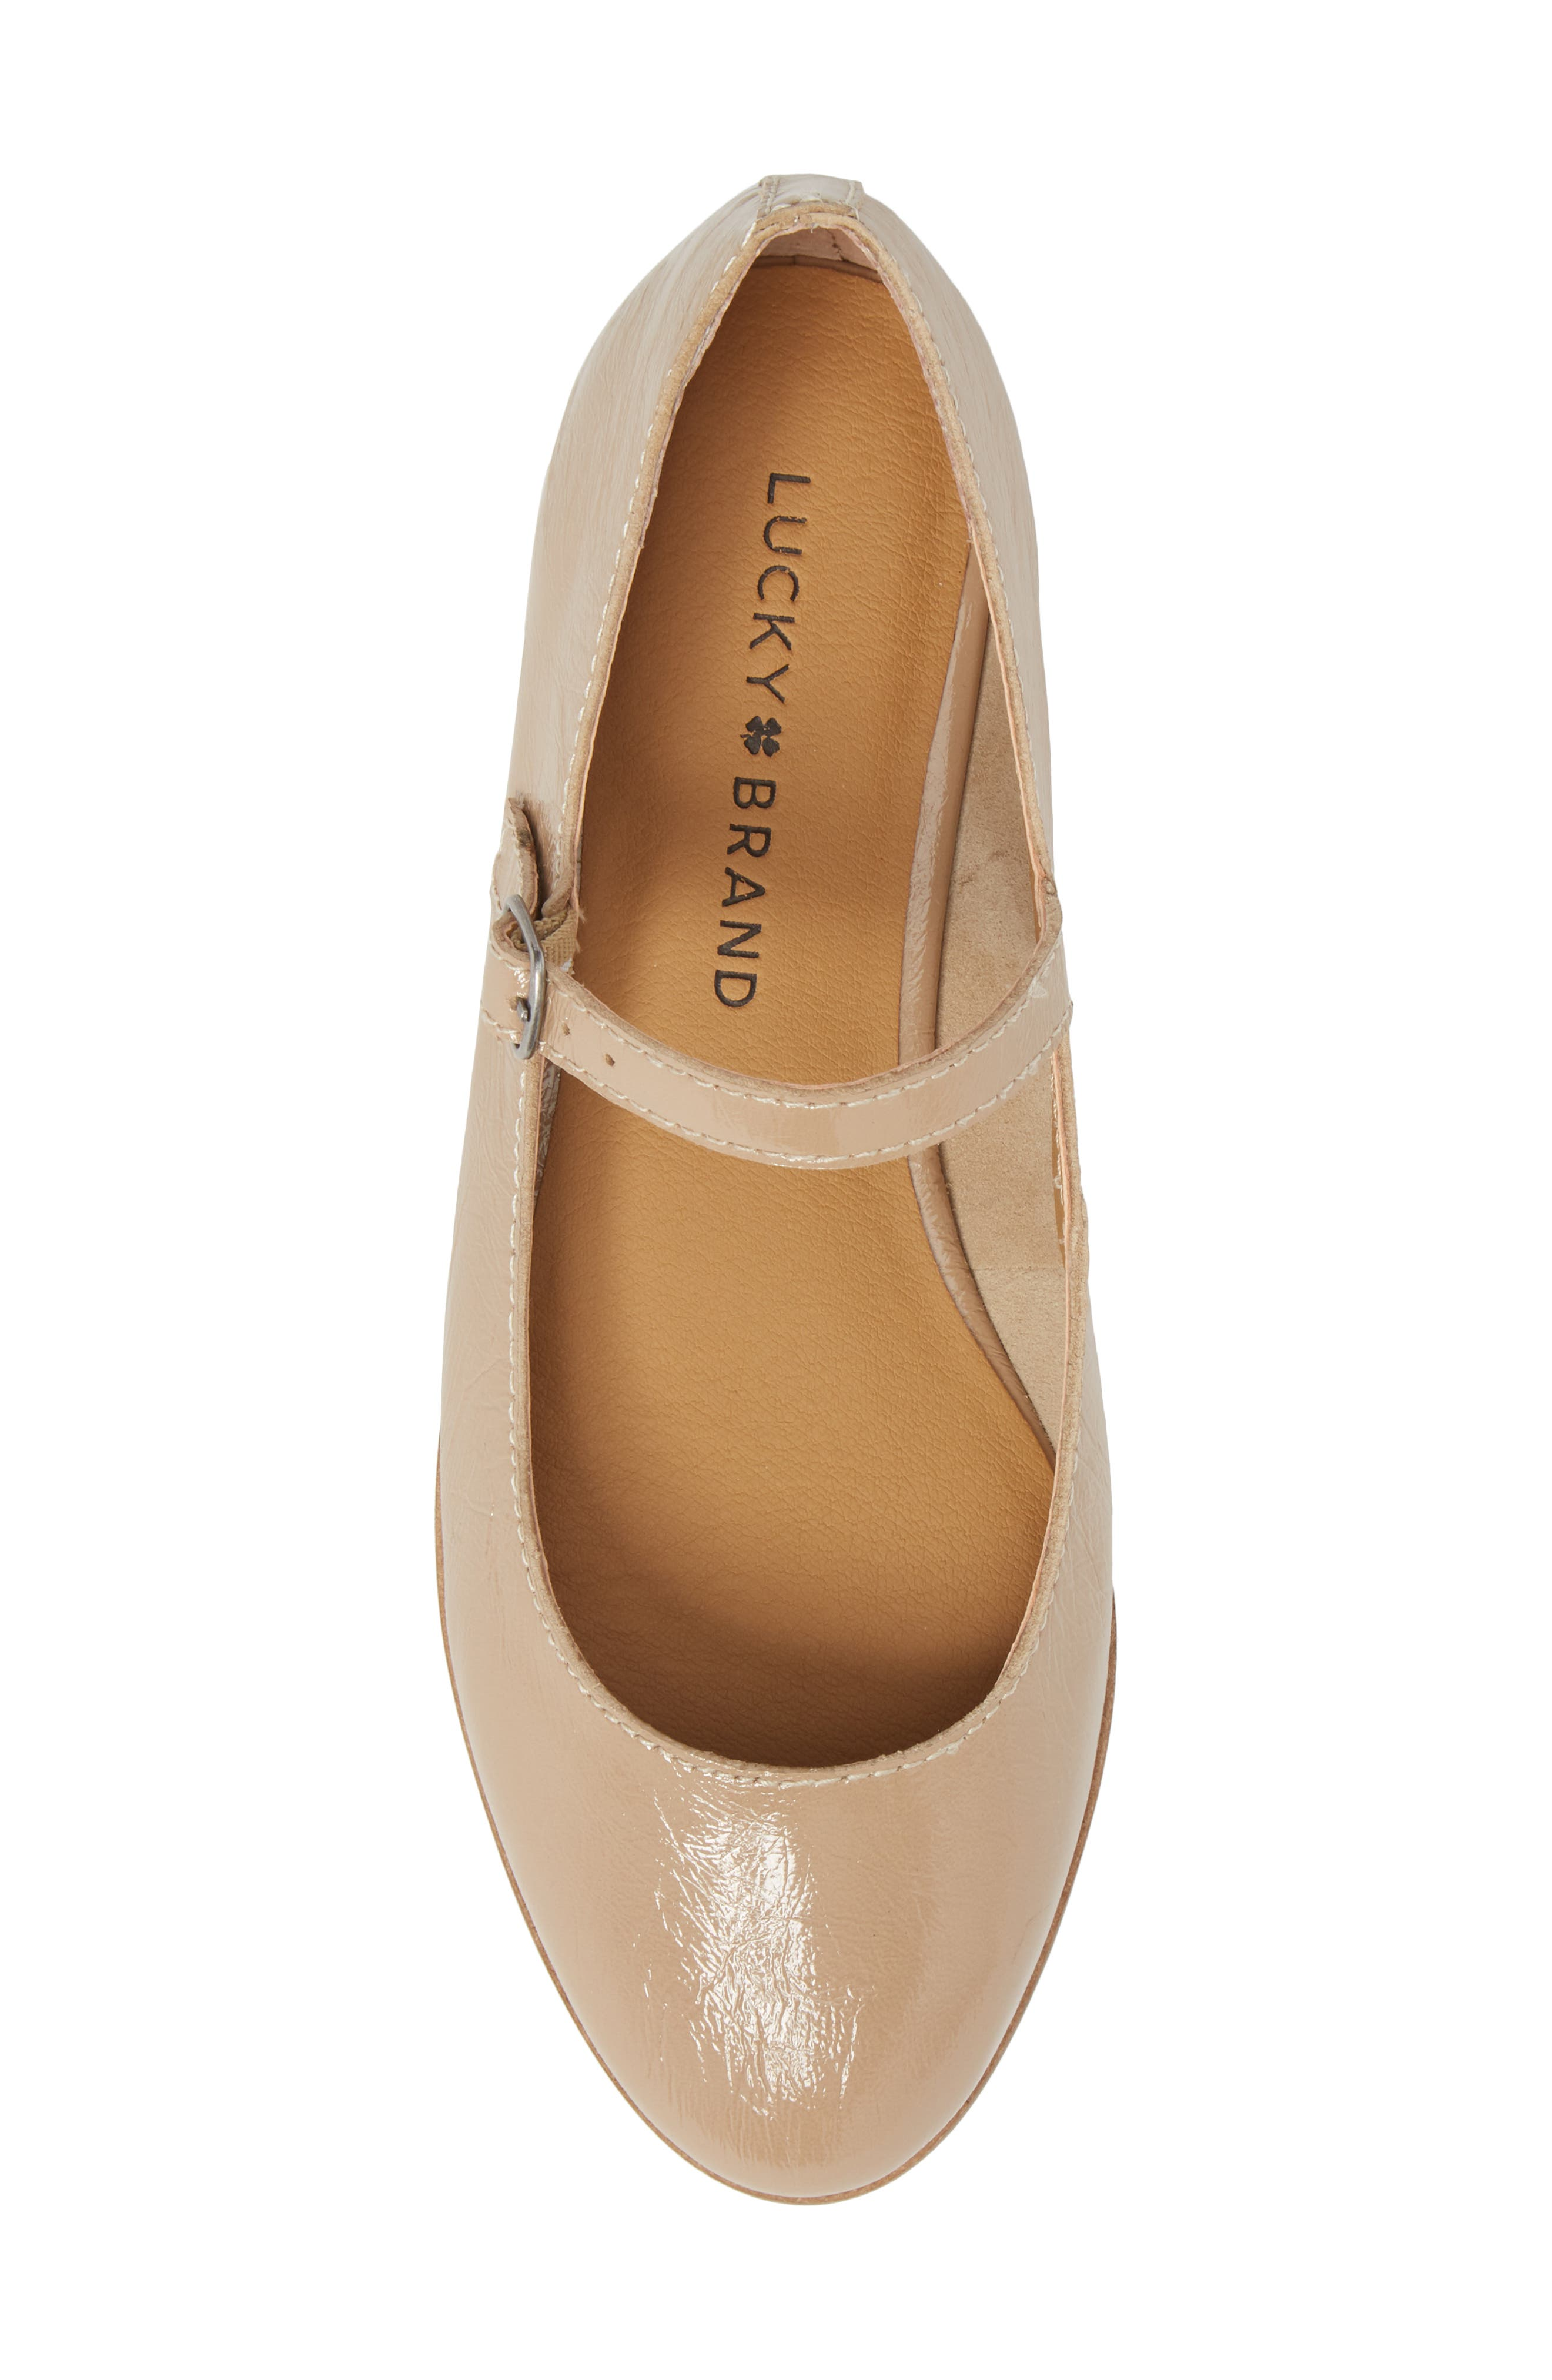 Ceentana Mary Jane Flat,                             Alternate thumbnail 5, color,                             Feather Leather